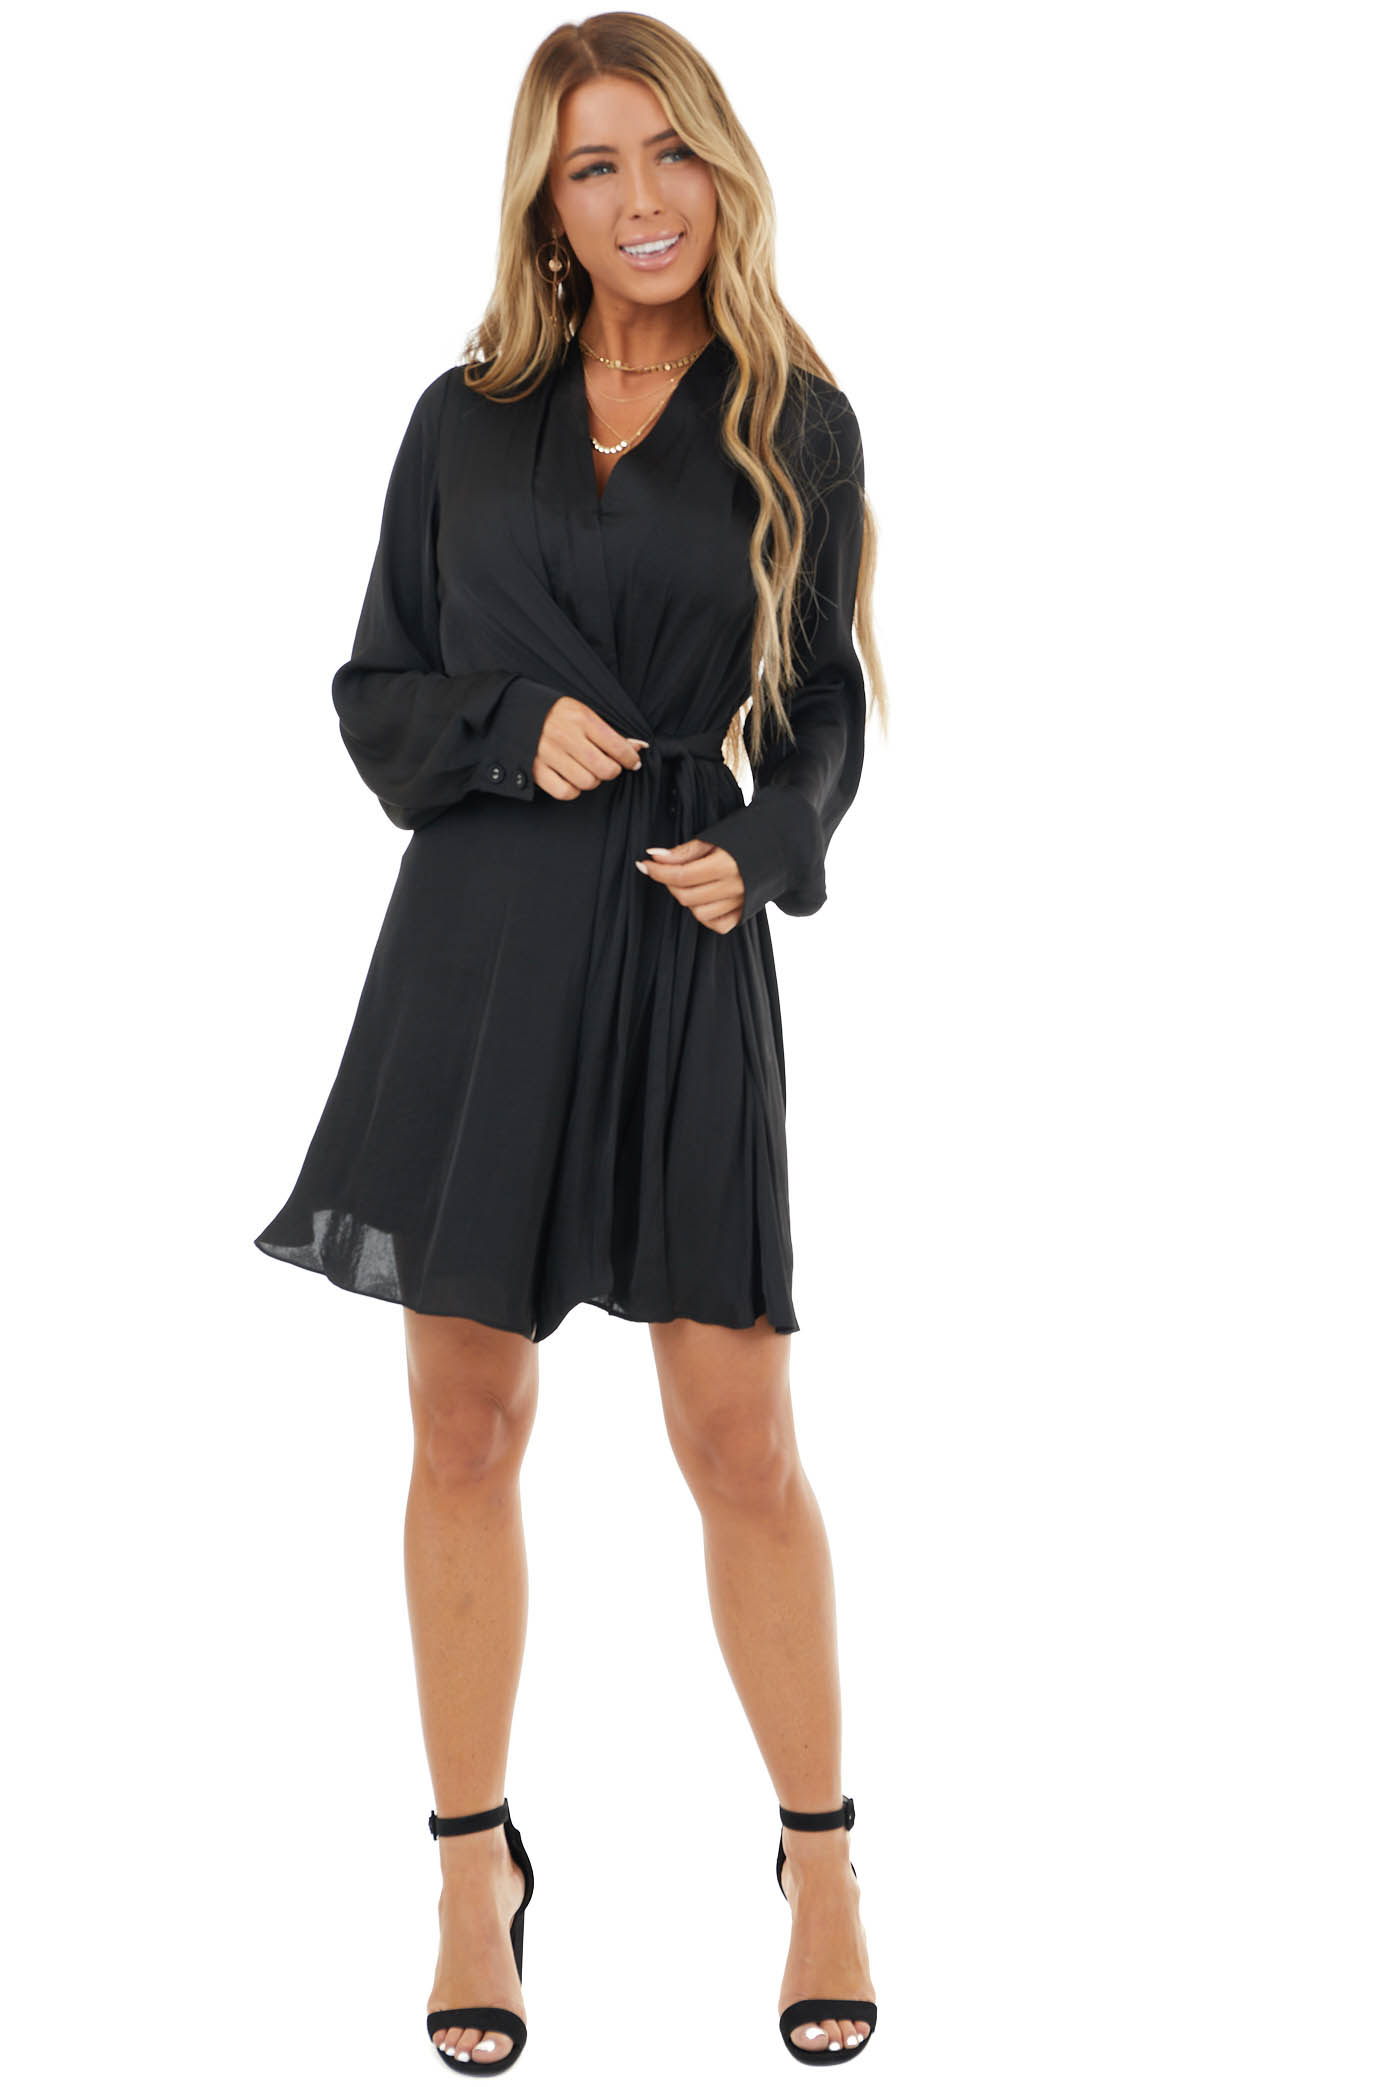 Black Surplice Short Flare Dress with Tie Detail and Buttons